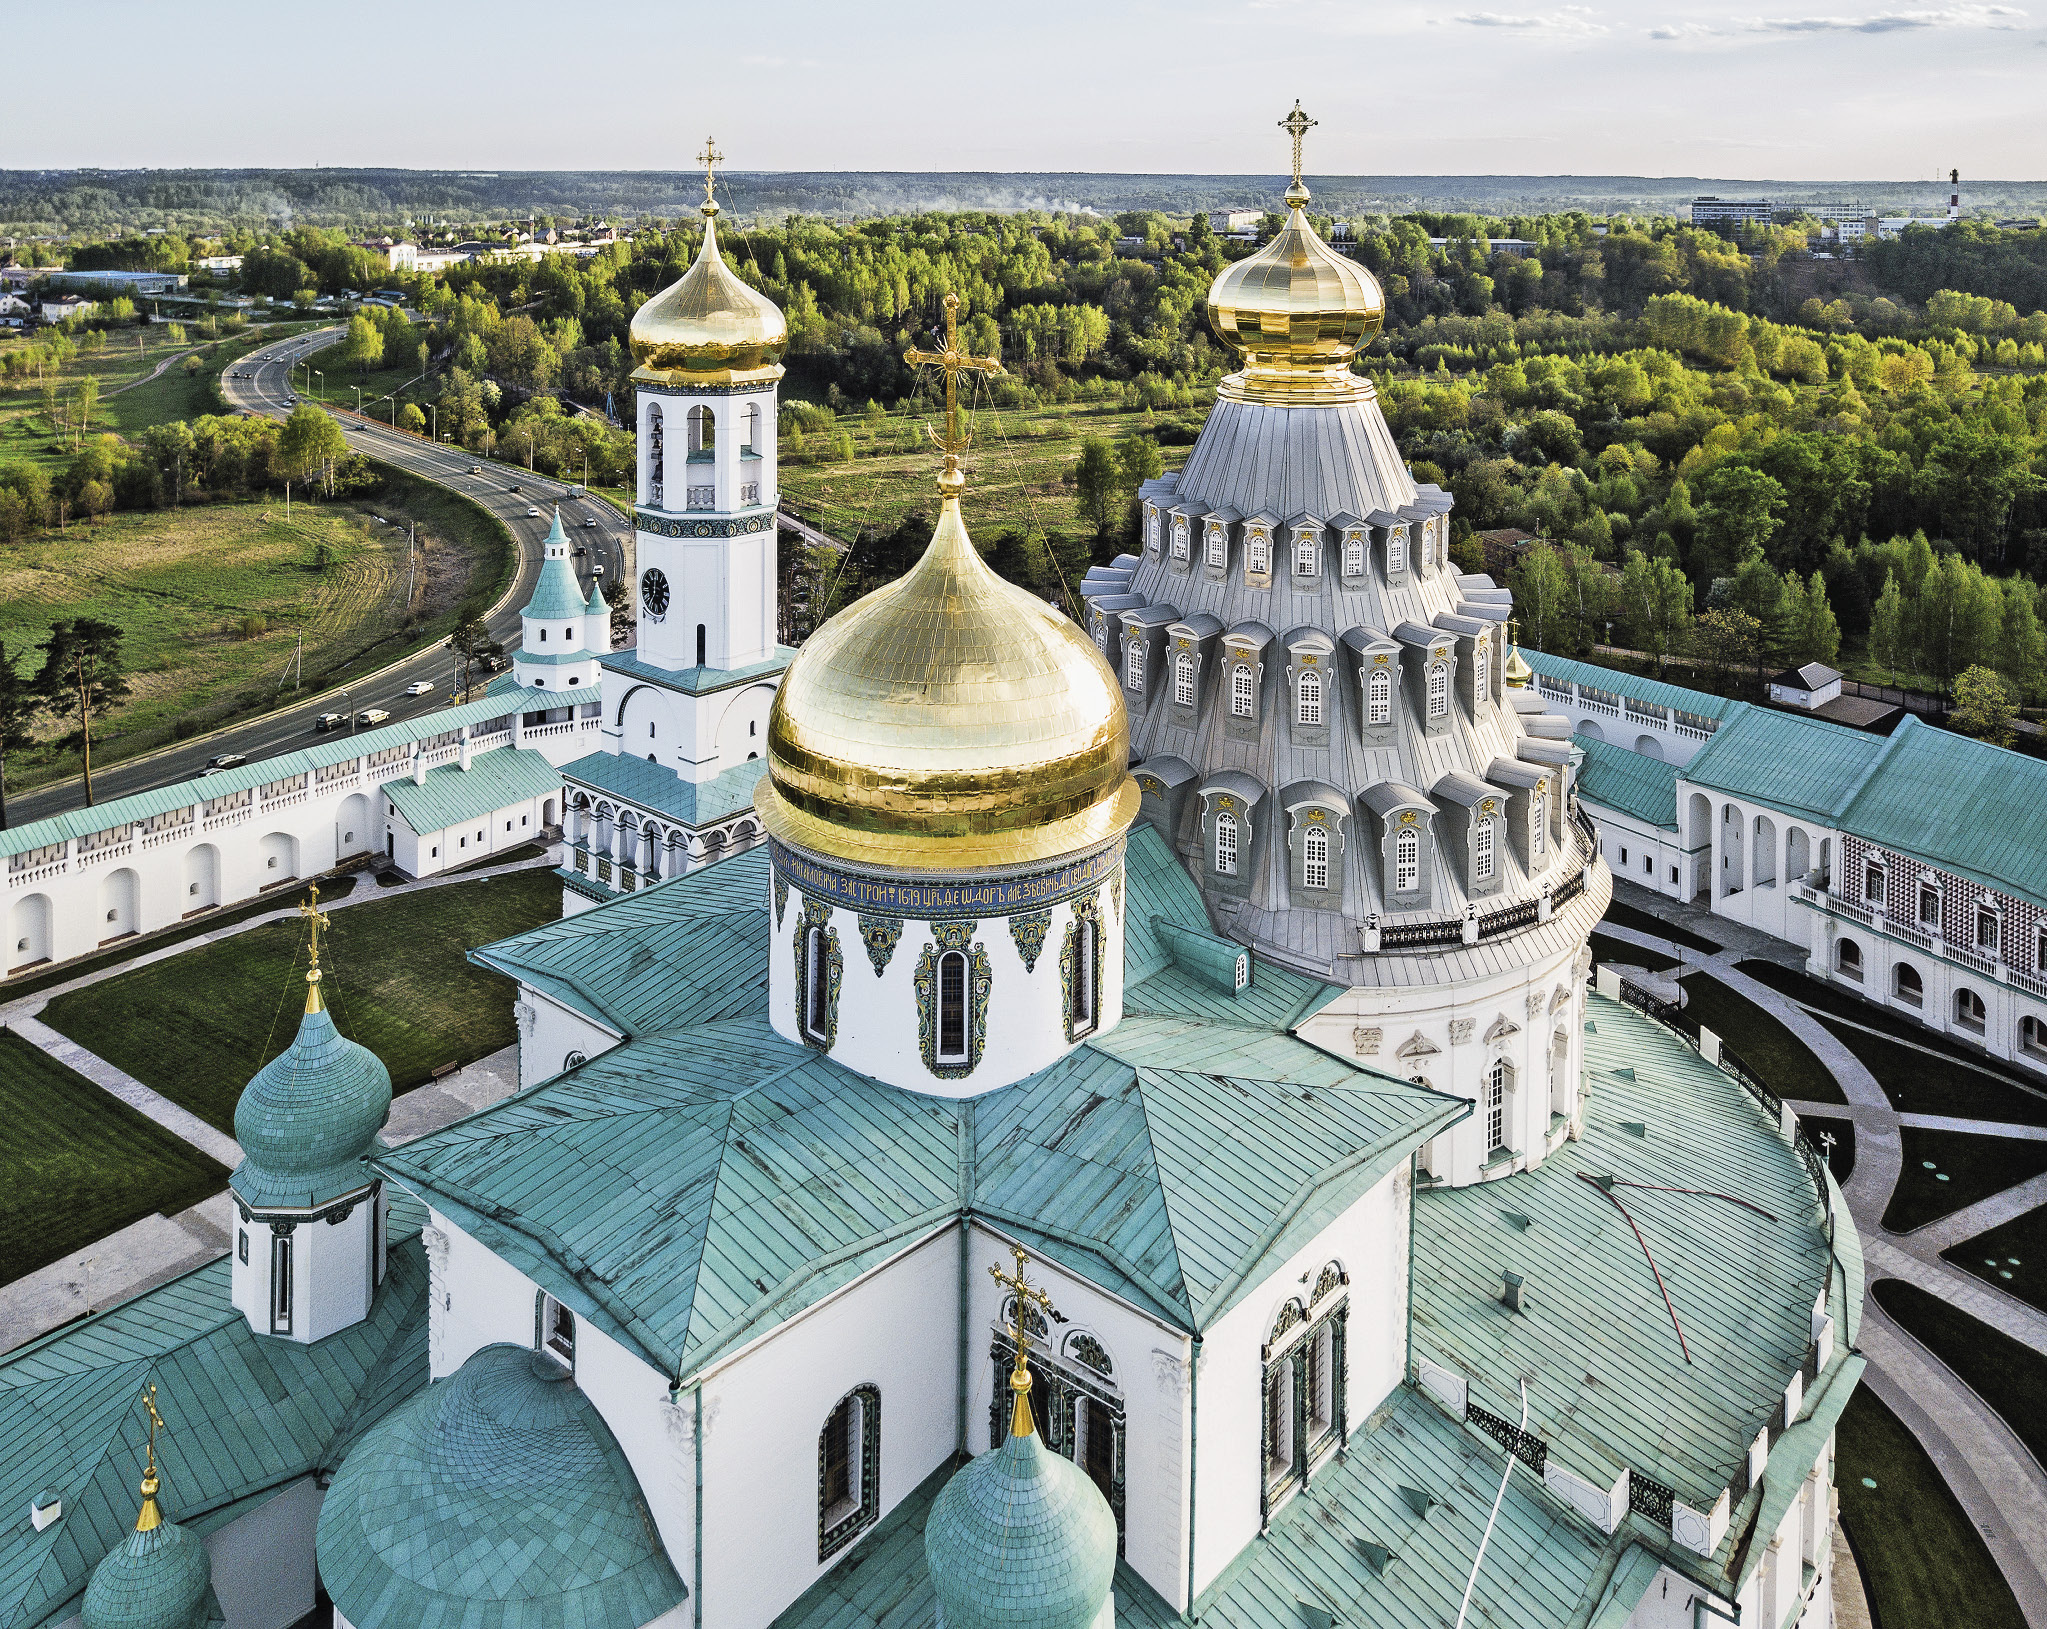 The Resurrection (Voskresensky) male monastery in New Jerusalem was founded in 1656 by Patriarch Nikon, who envisioned a replica of the Church of the Holy Sepulchre outside Moscow.